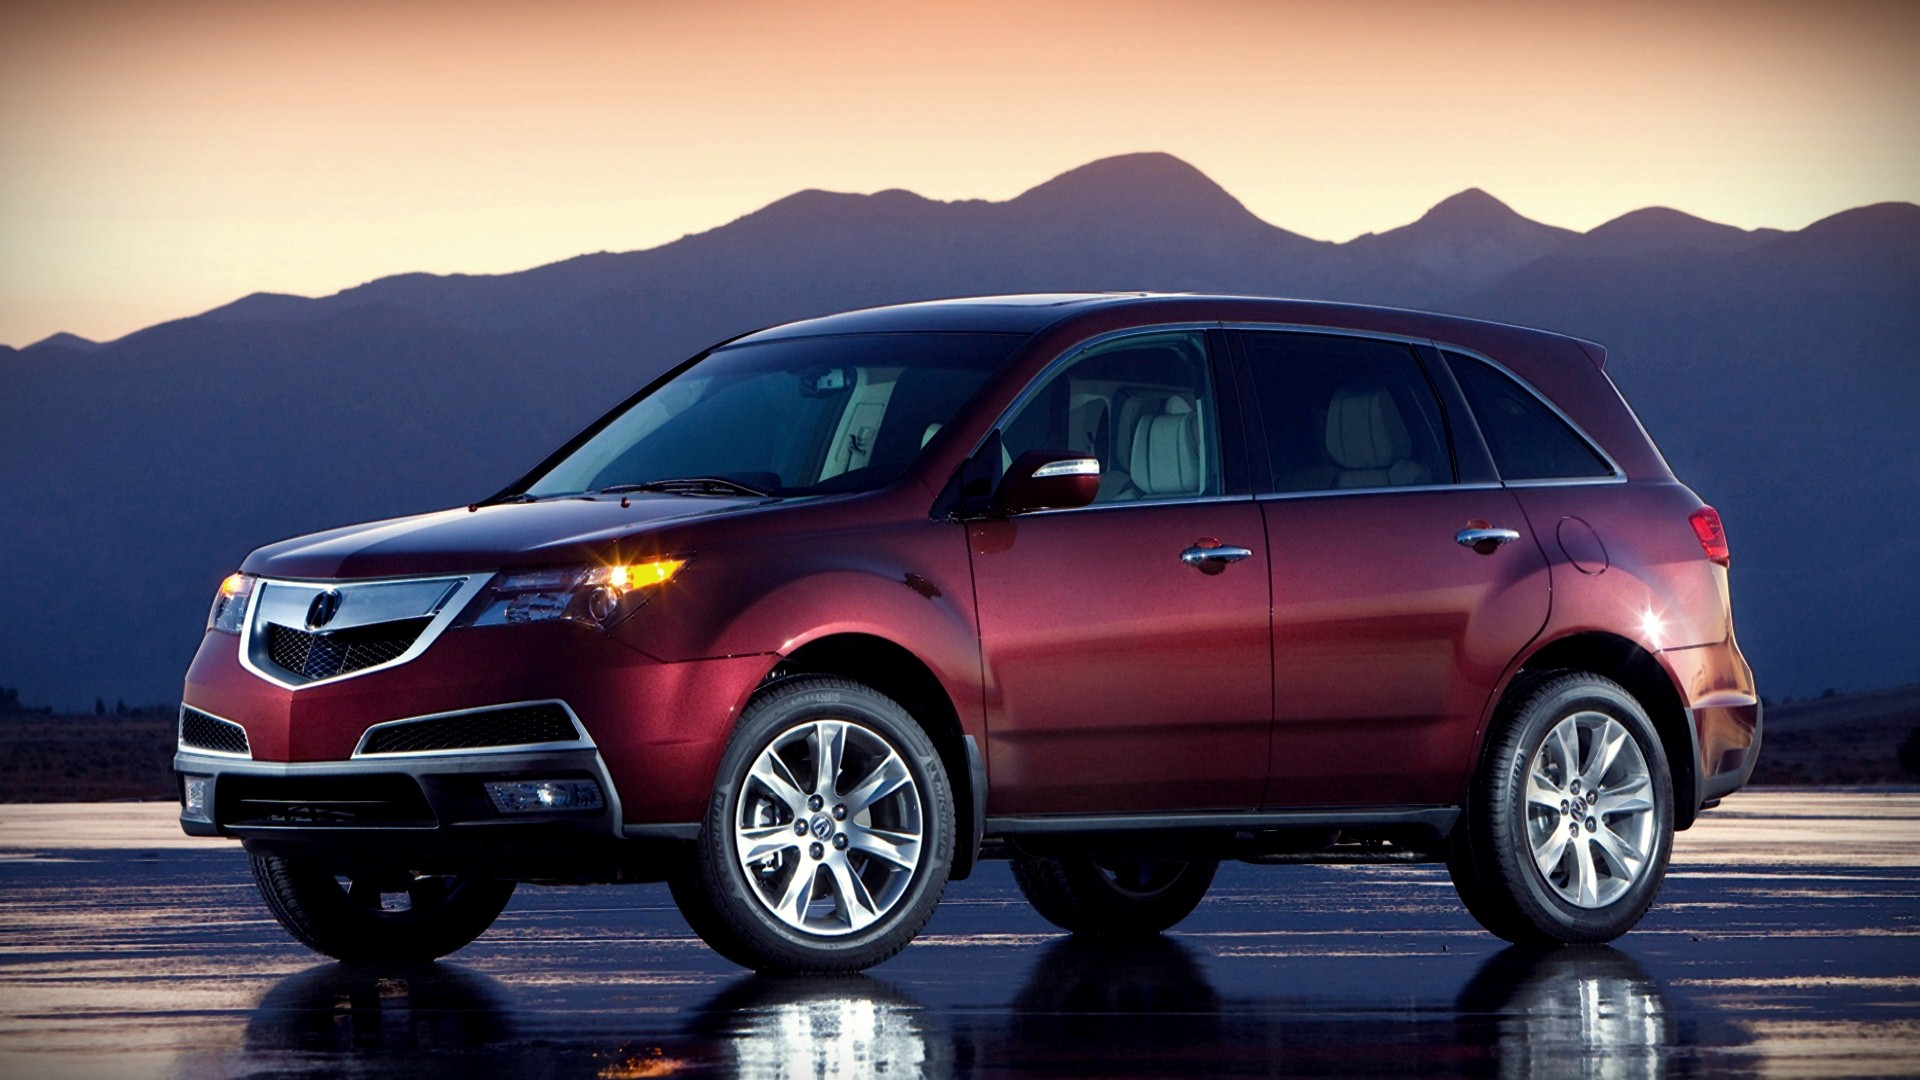 Acura-Mdx-Money-Factor-car-free-download-cars-images-pinterest-car-and-driver-autosho-wallpaper-wpc9002034